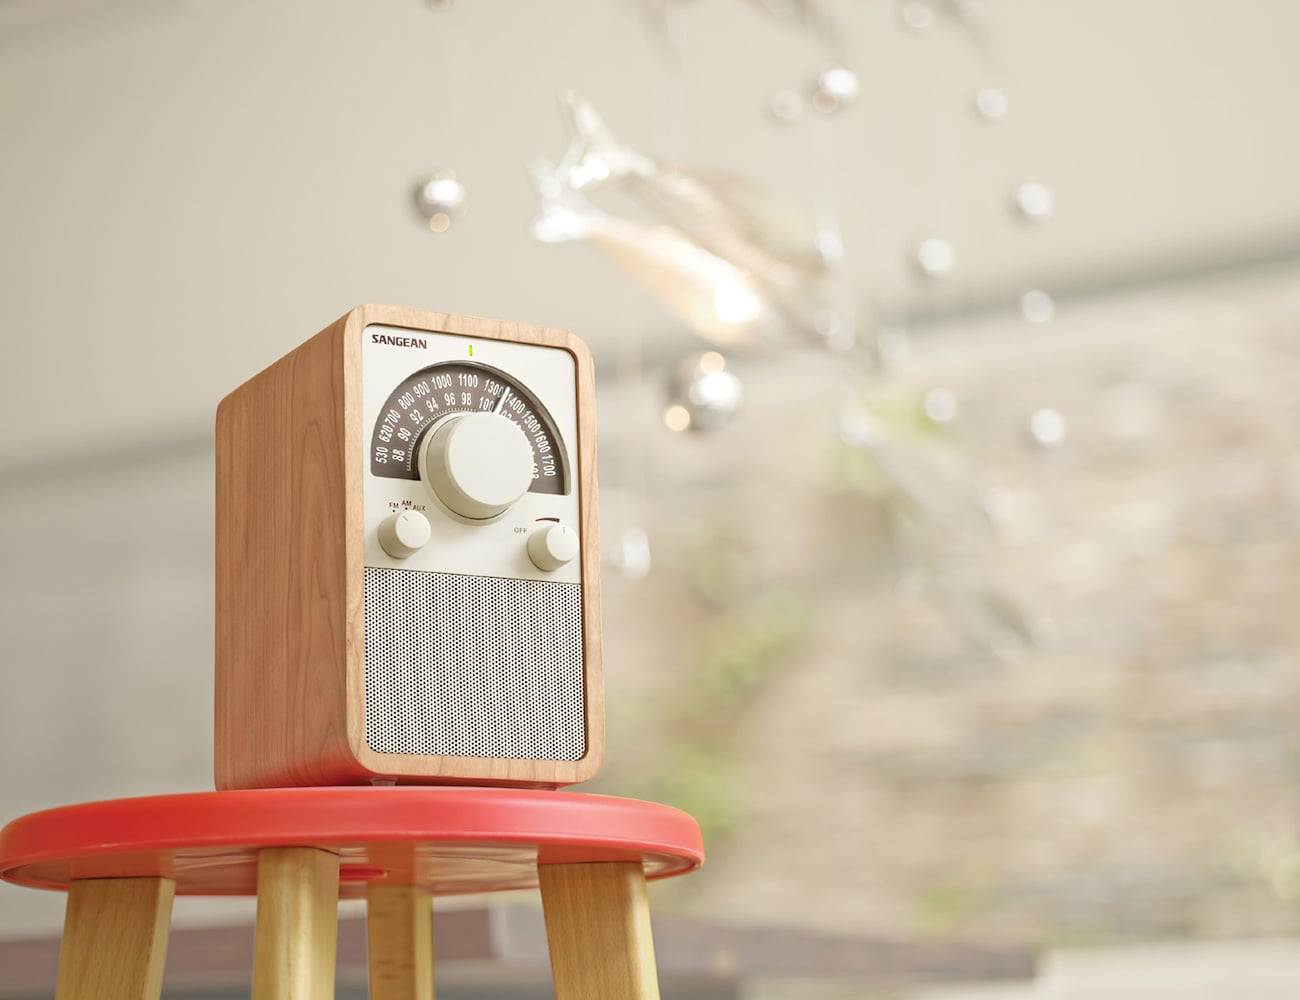 Sangean+Table+Top+Wooden+Radio